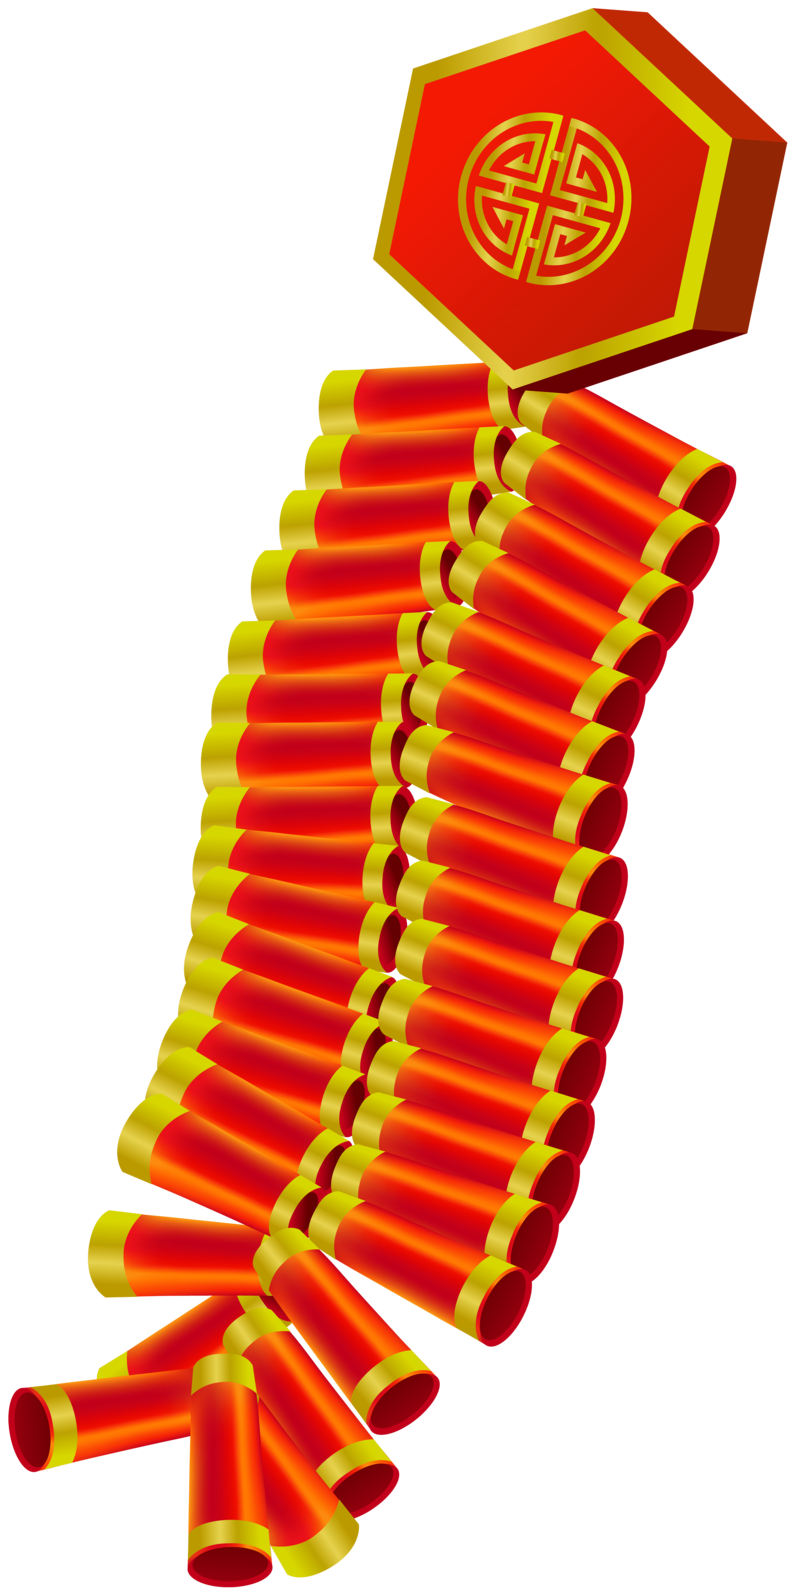 Firecracker vector tết. Download free png chinese